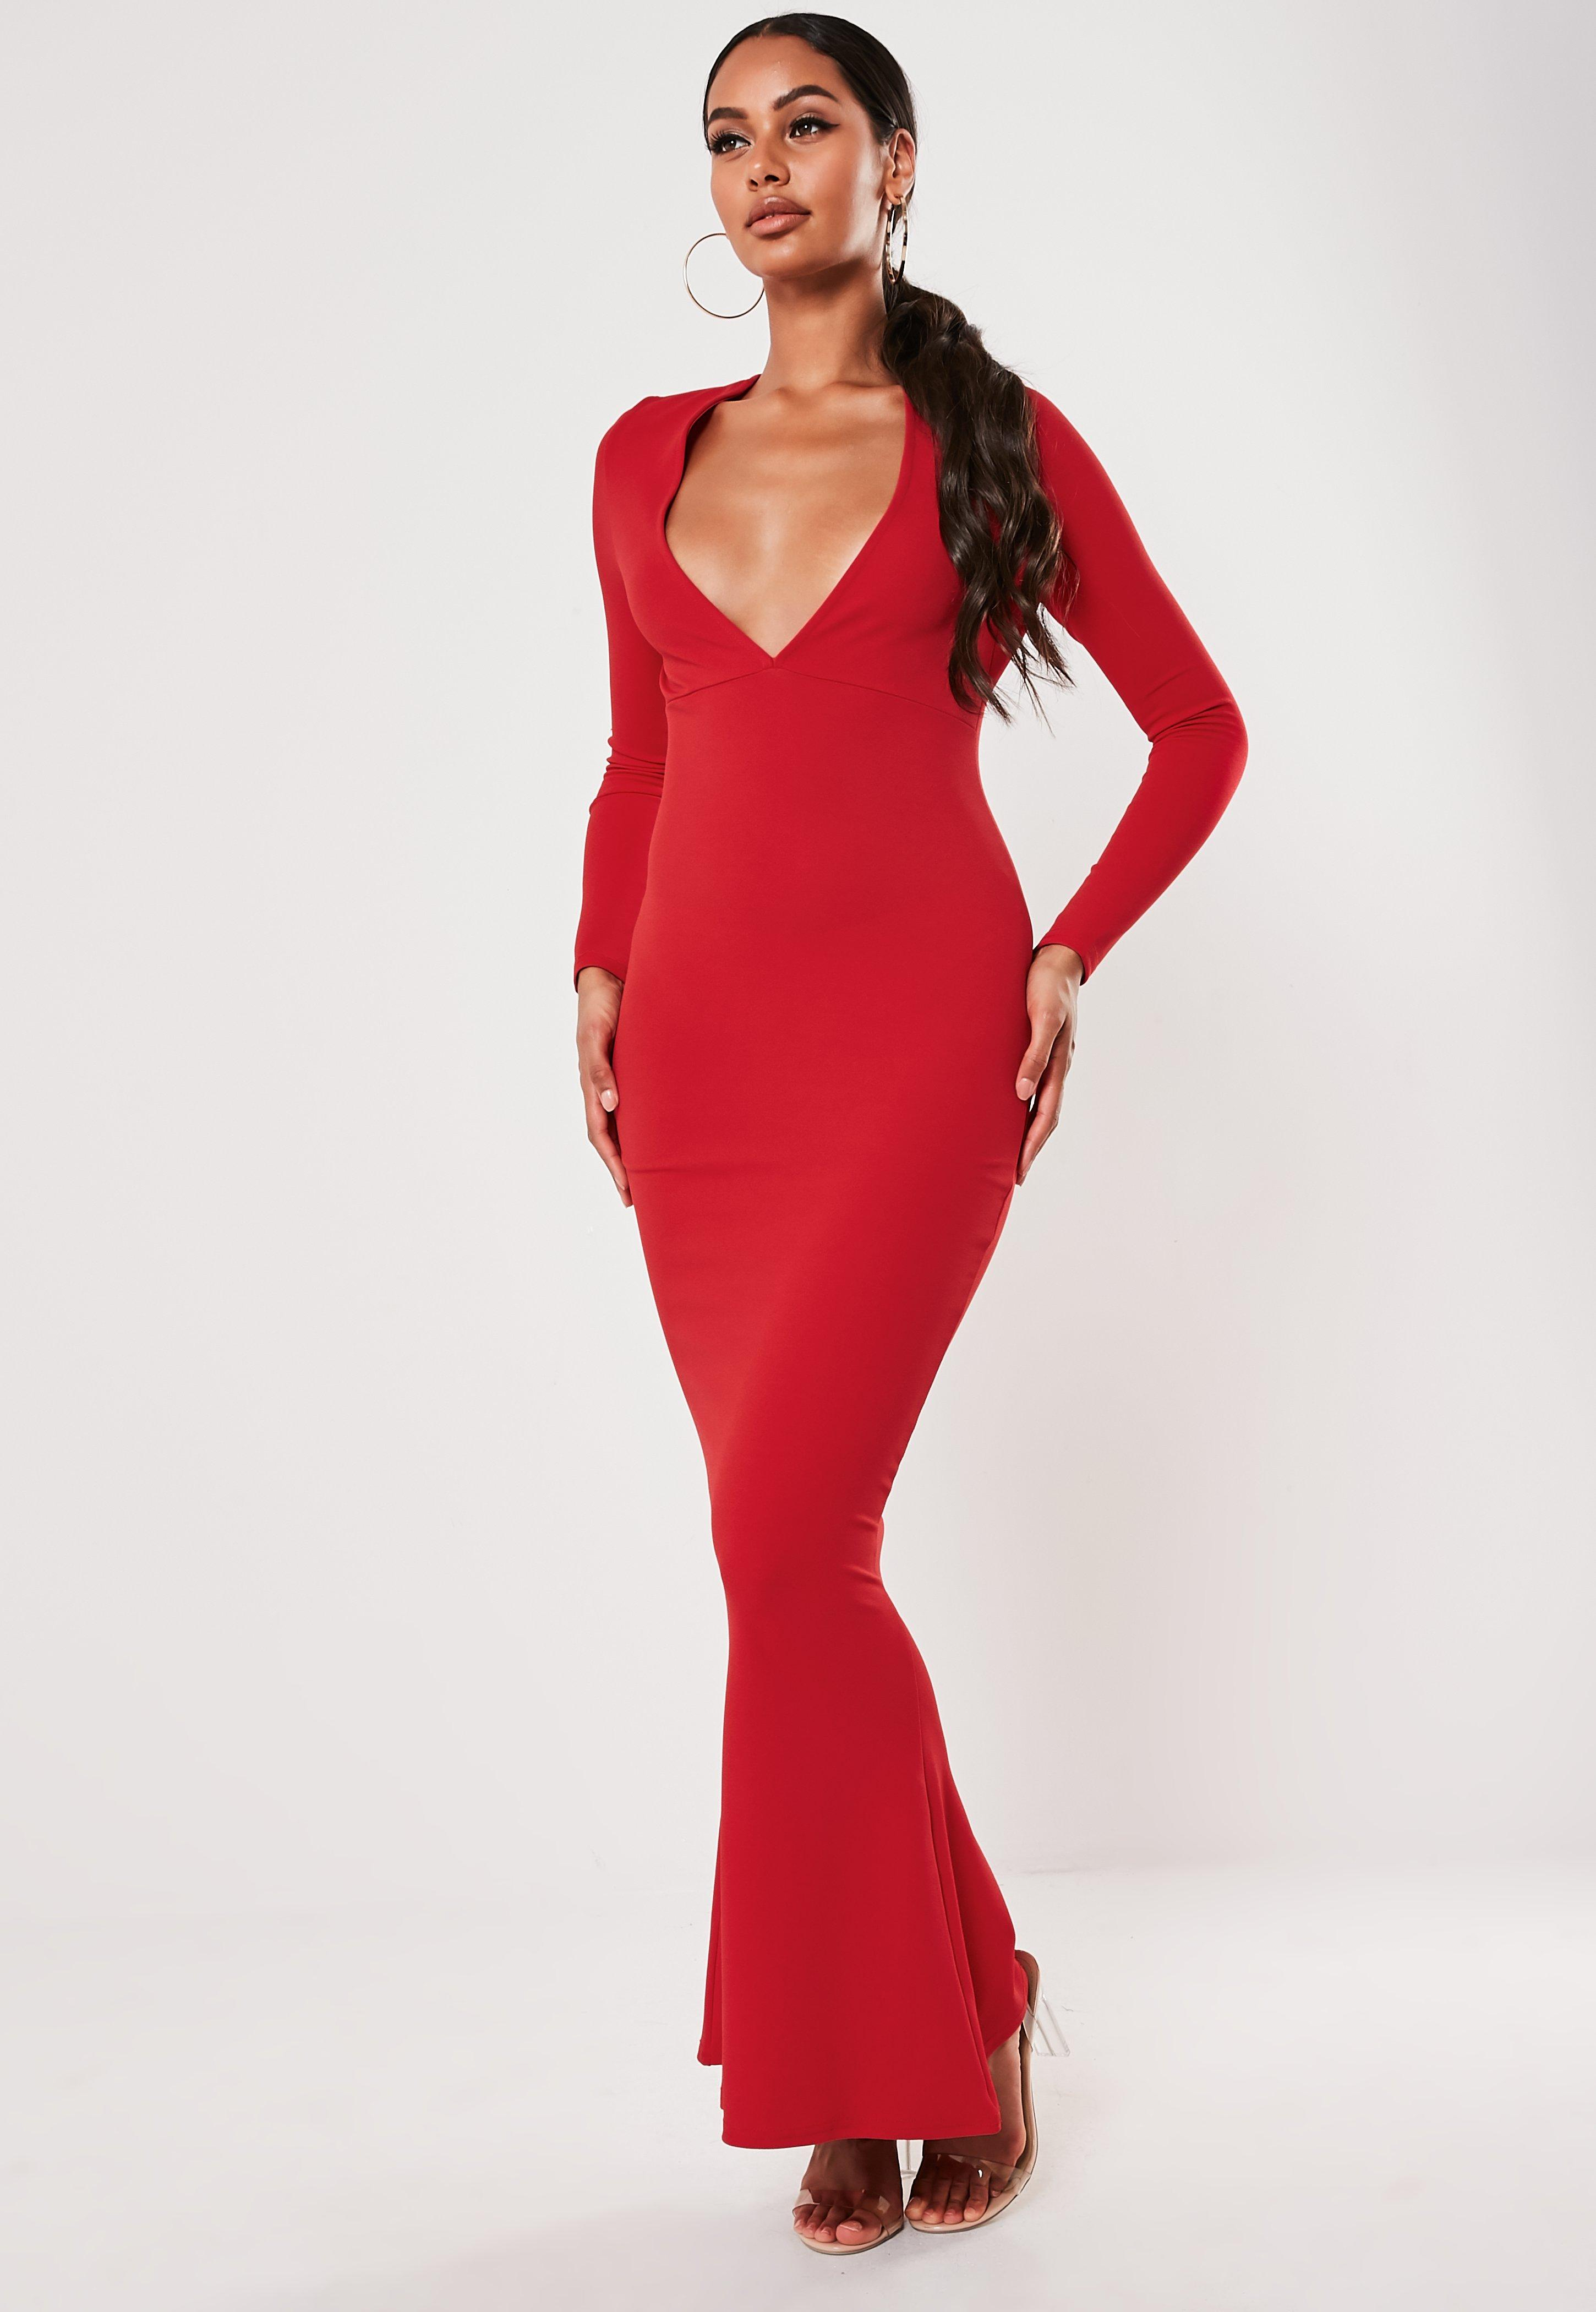 Robe Longue Rouge Marine Decollete Plongeant